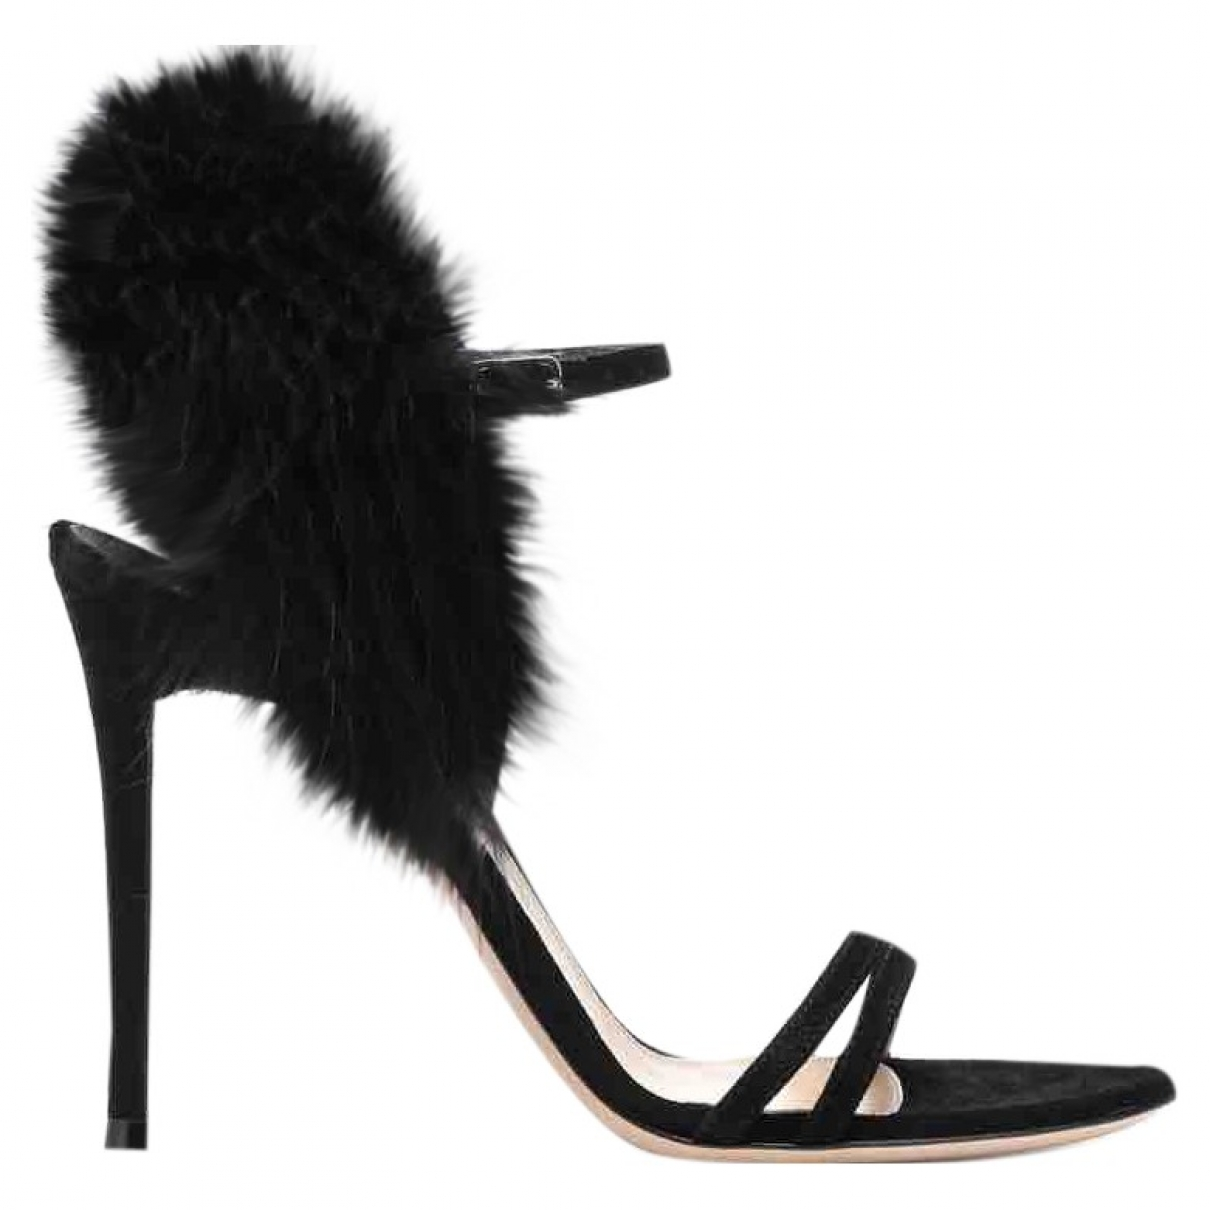 Gianvito Rossi \N Black Suede Sandals for Women 37 EU